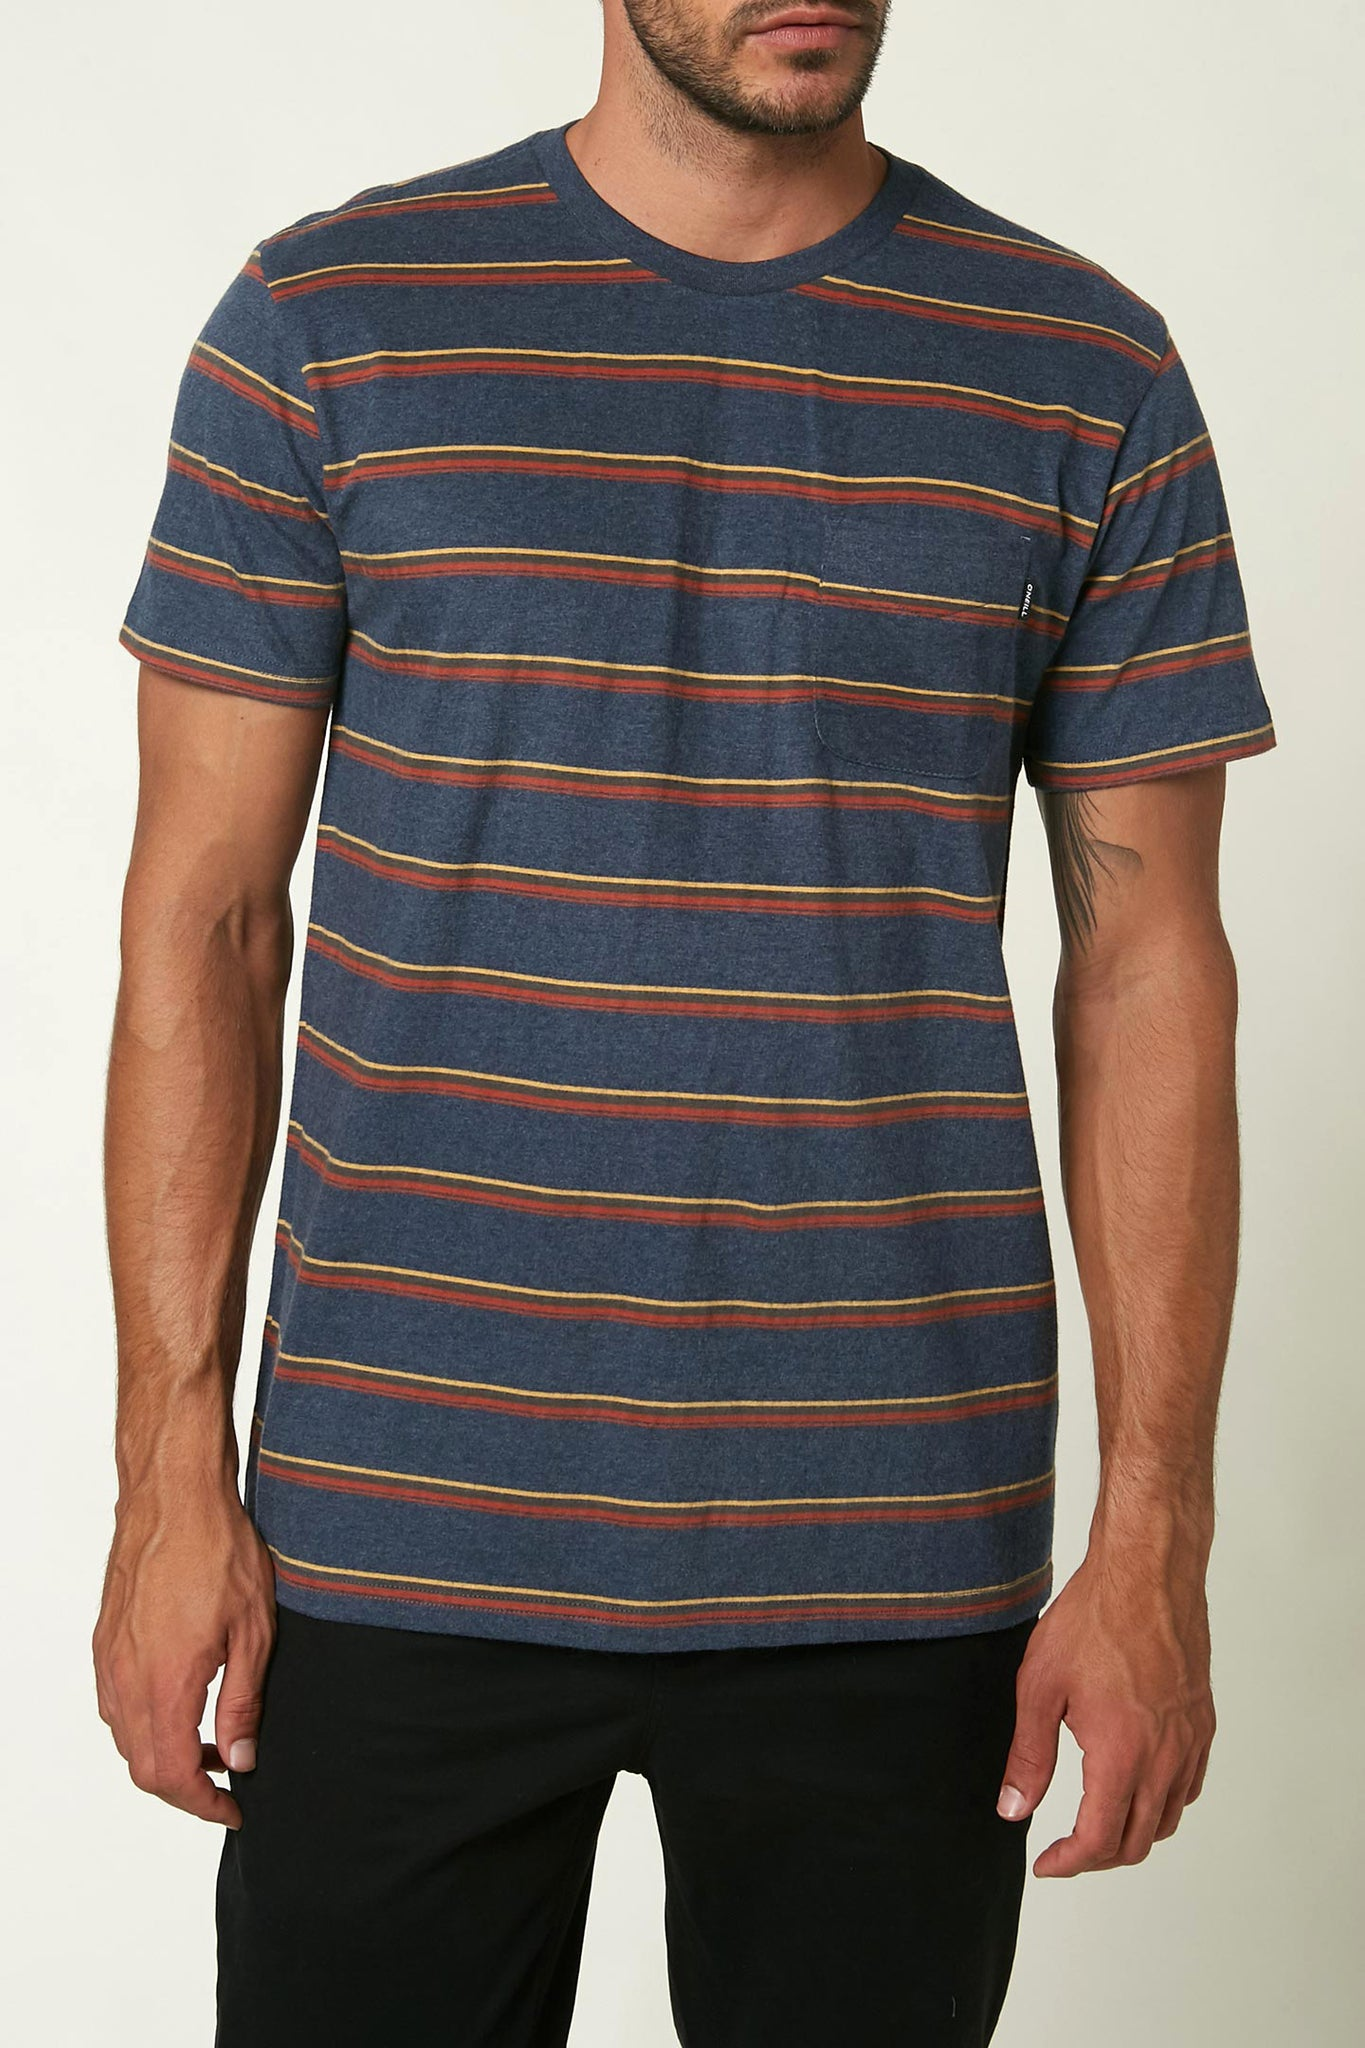 Goathill Tee - Navy Heather | O'Neill